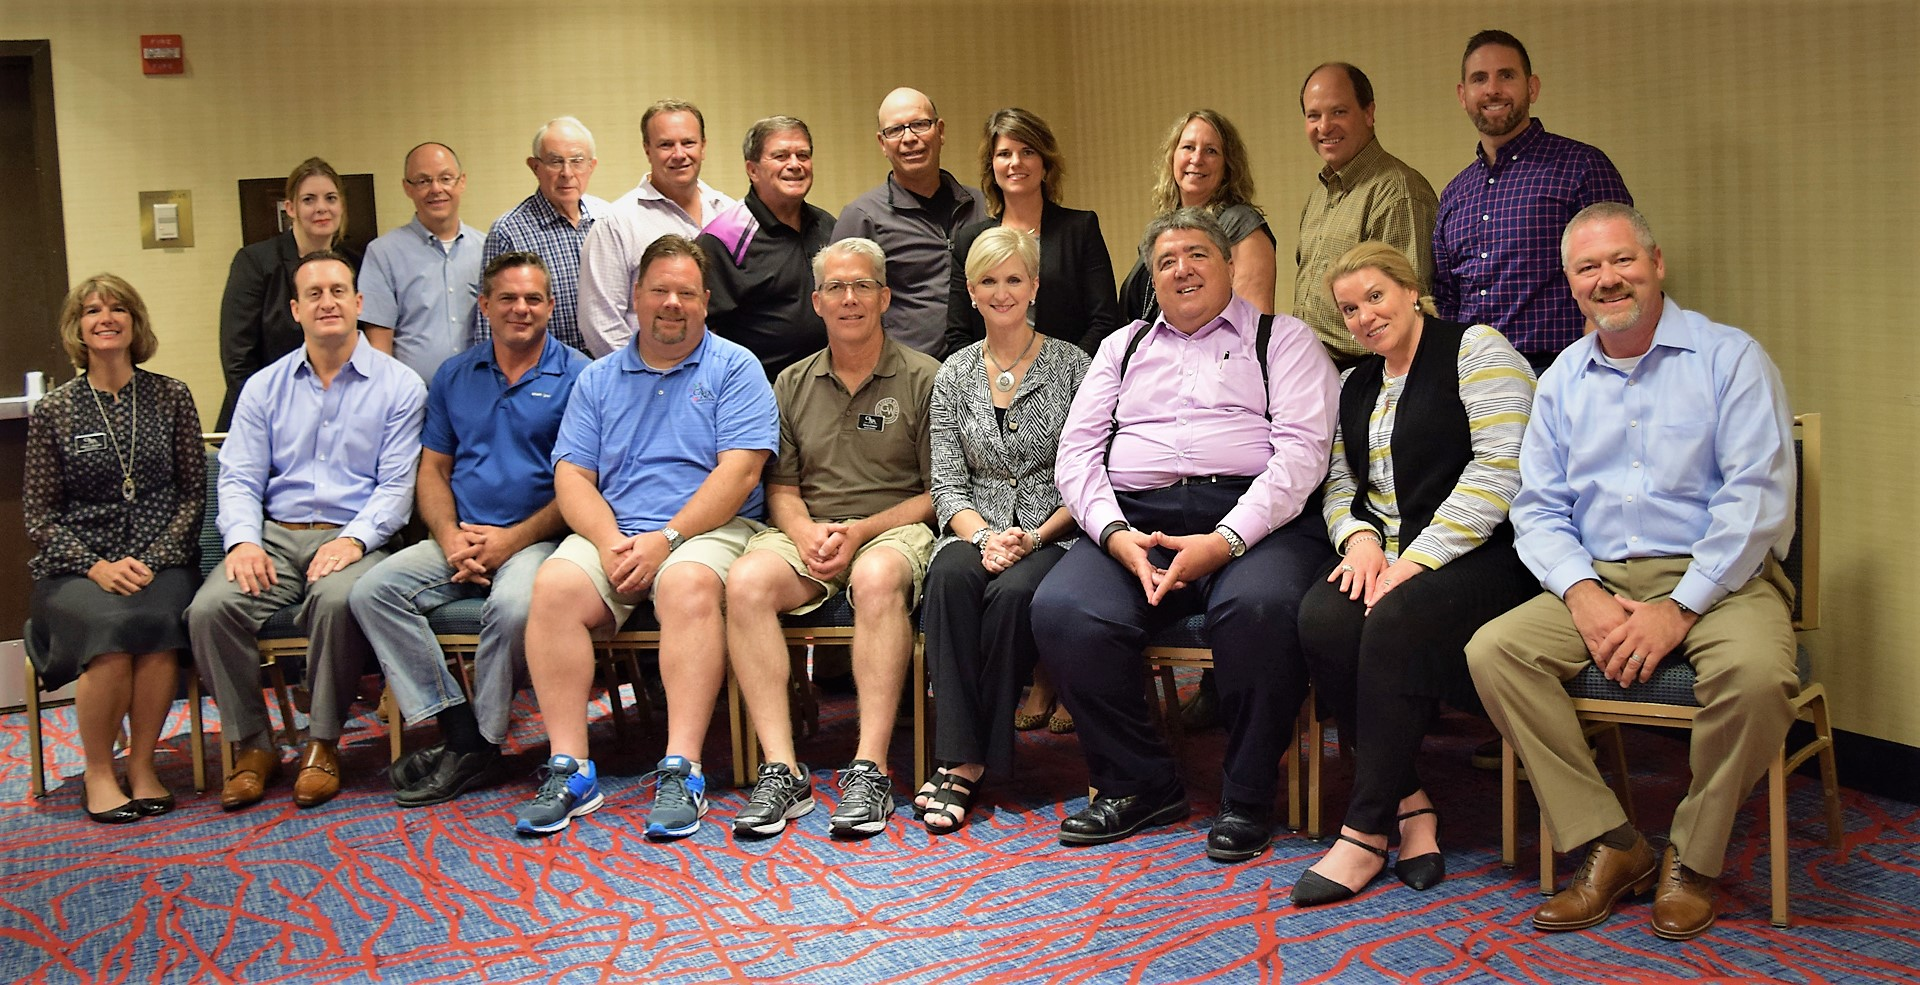 2016 CANA Board of Directors